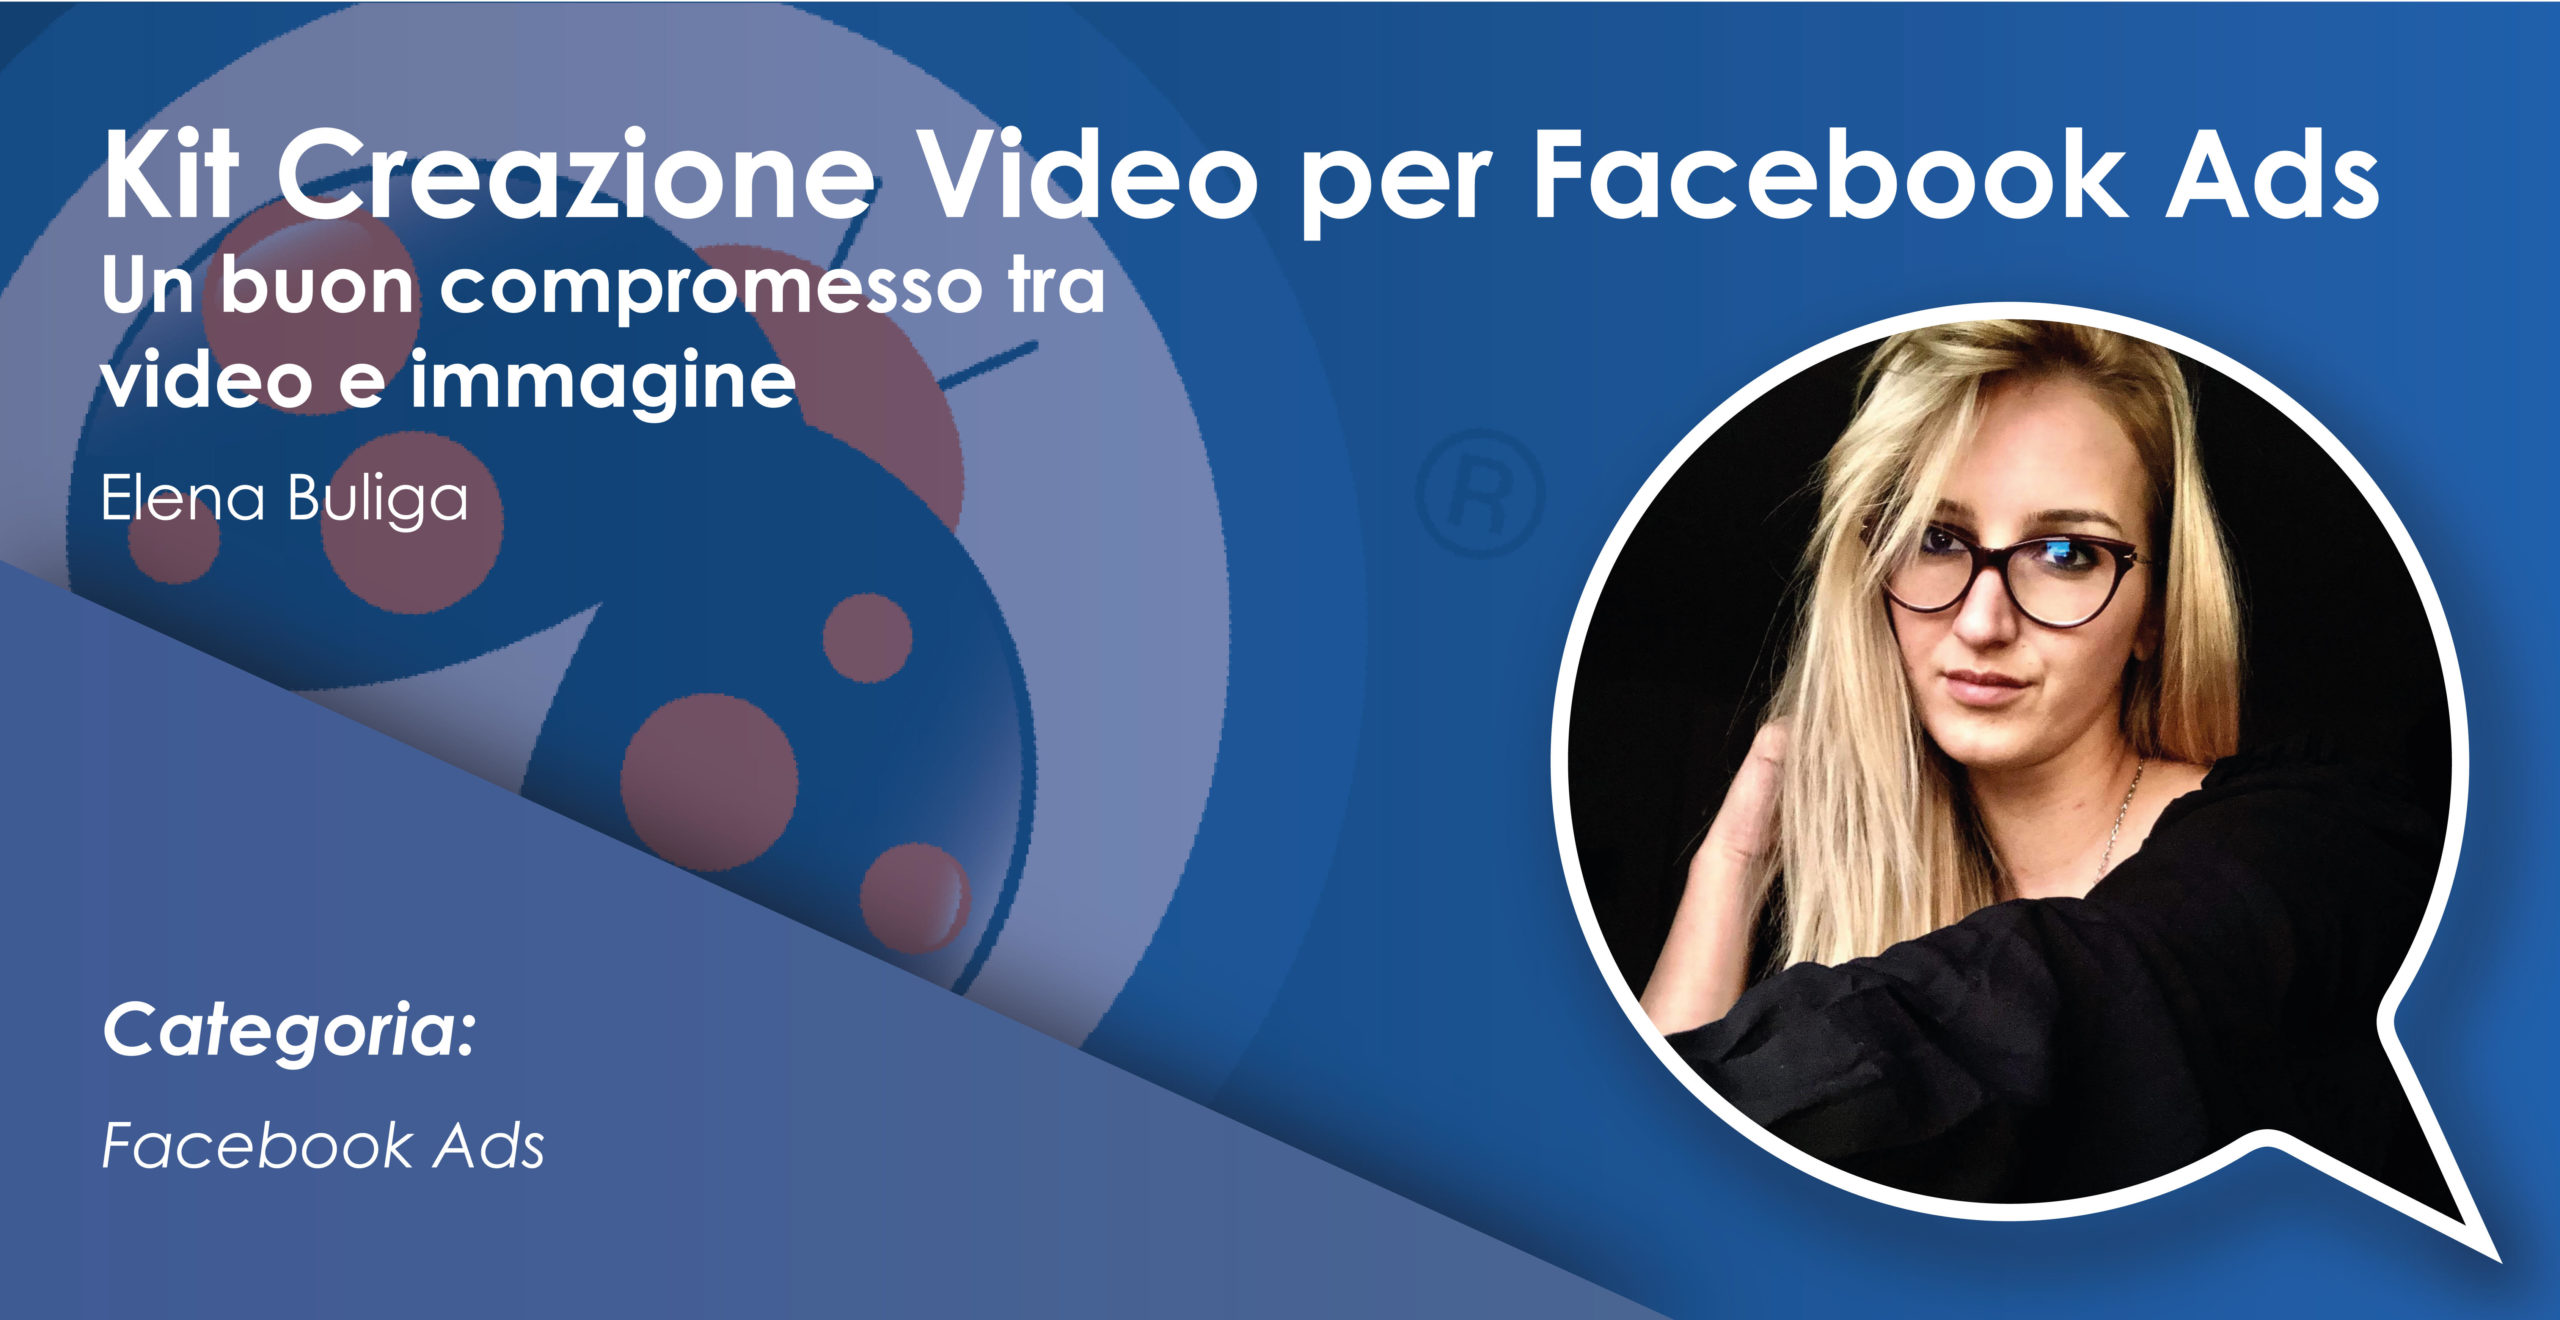 Kit Creazione Video per Facebook Ads